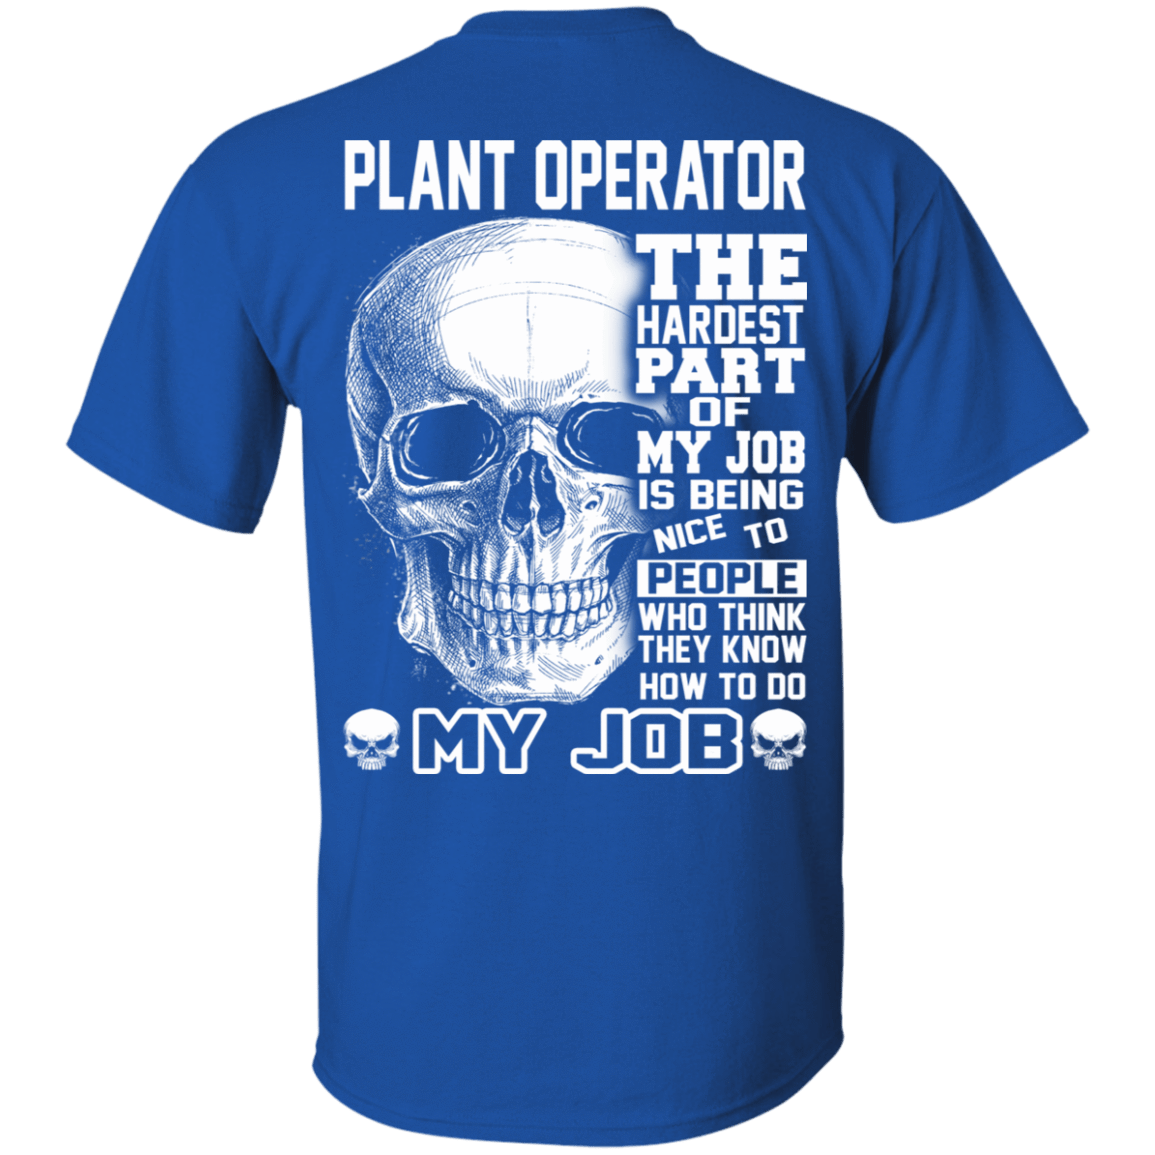 Plant Operator The Hardest Part Of My Job 22-110-71609215-249 - Tee Ript